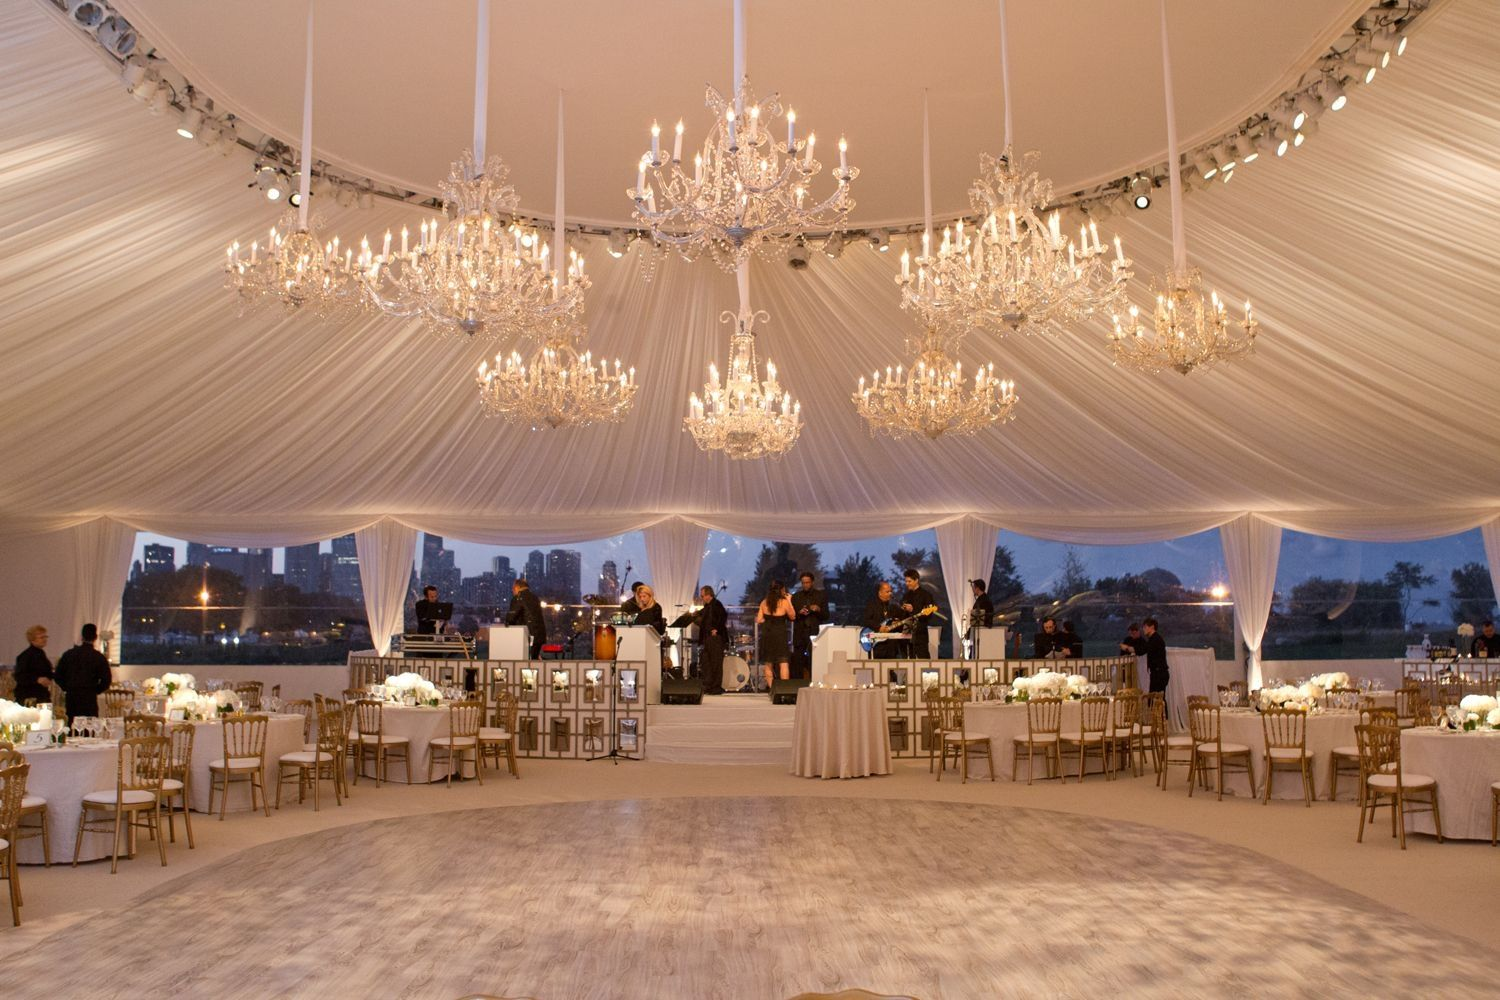 Outdoor Wedding Reception Venues Near Me 15 Best